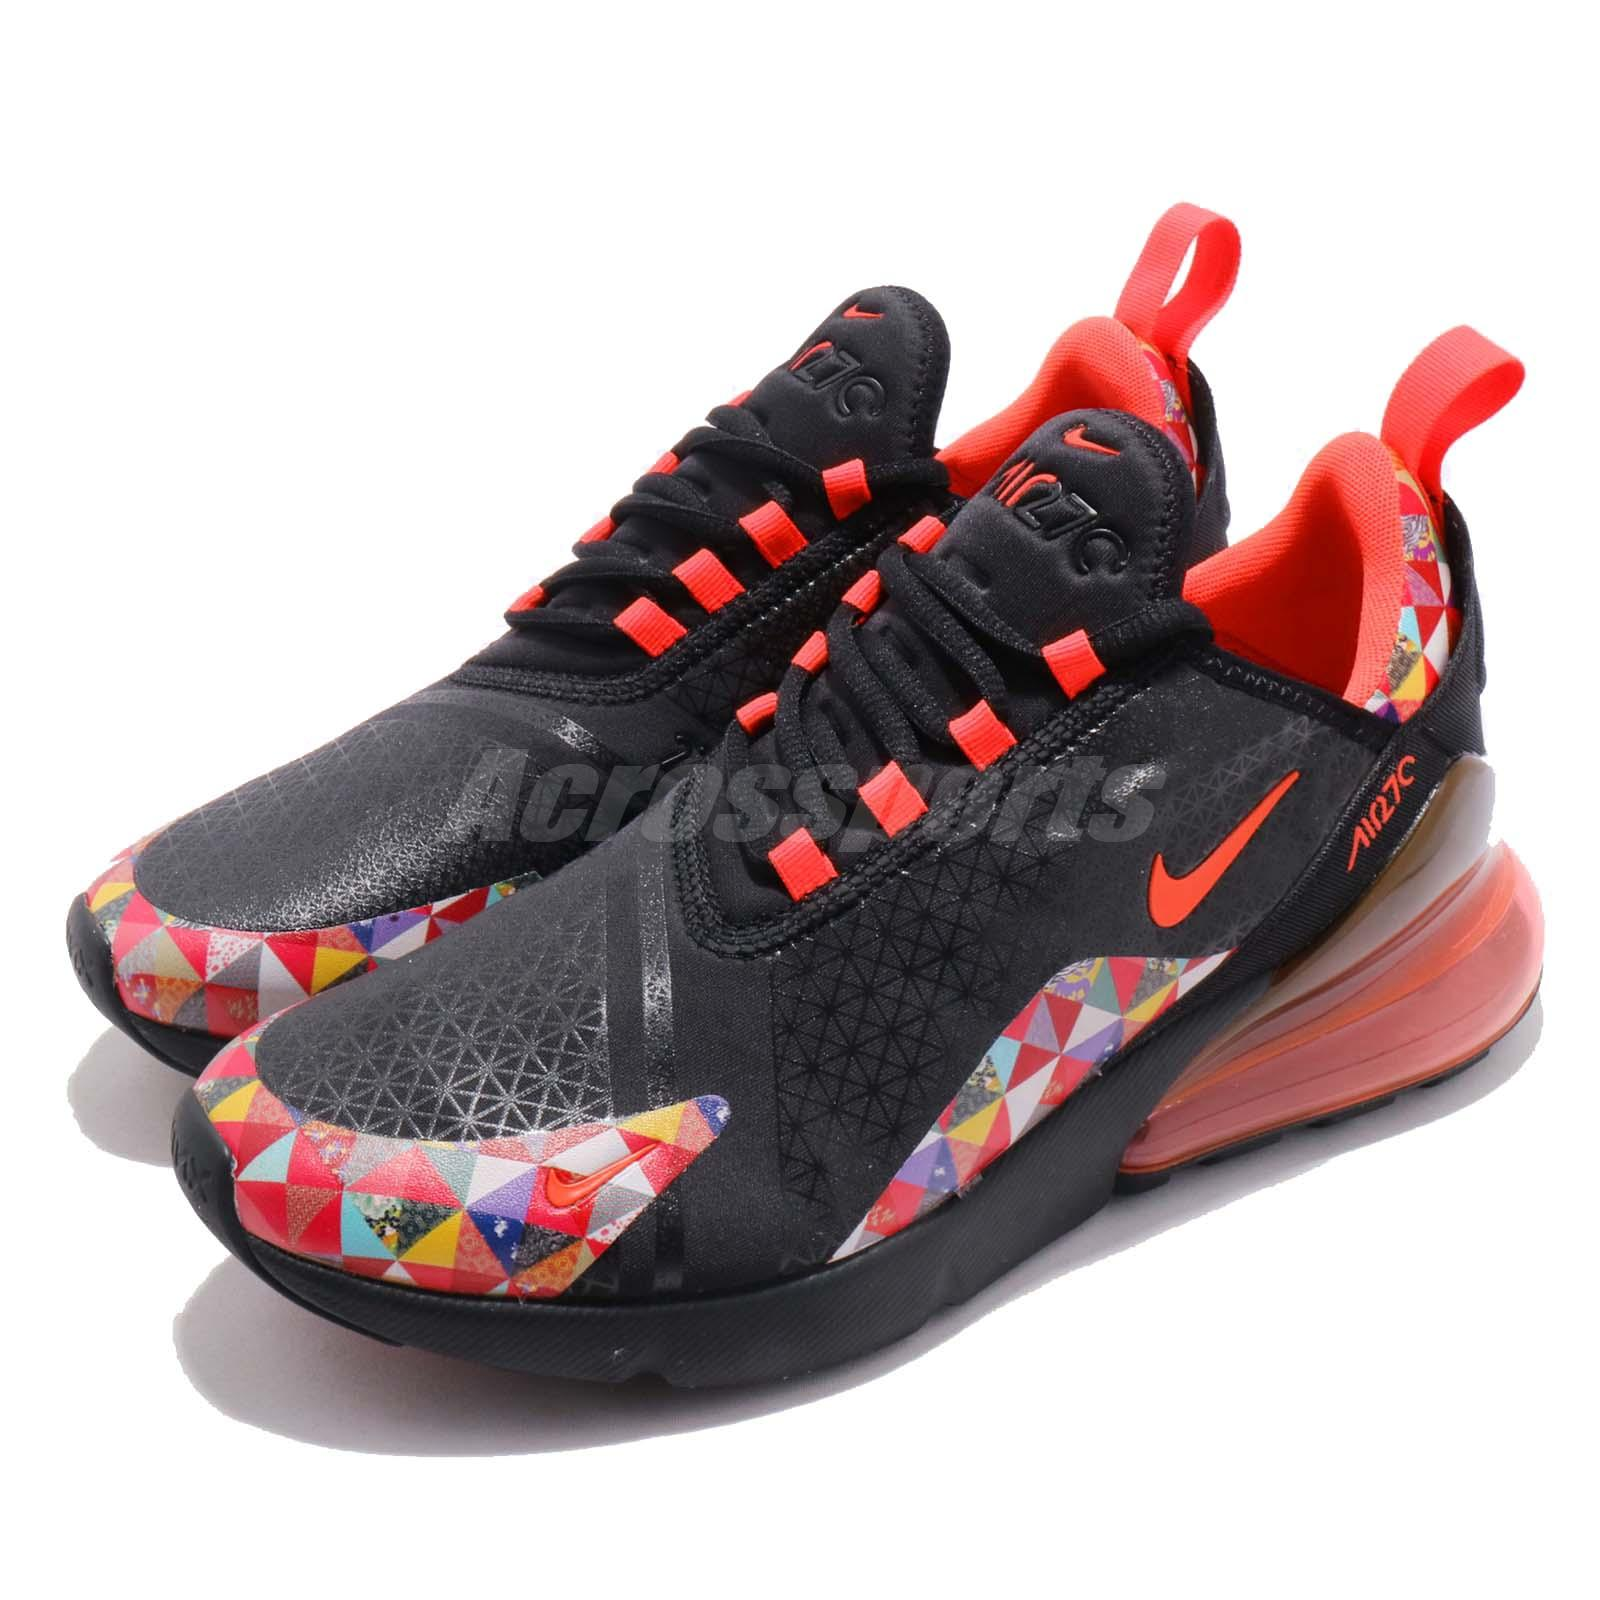 6a2115e74e9 Details about Nike Air Max 270 CNY Chinese New Year Red Black Men Running  Shoes BV6650-016